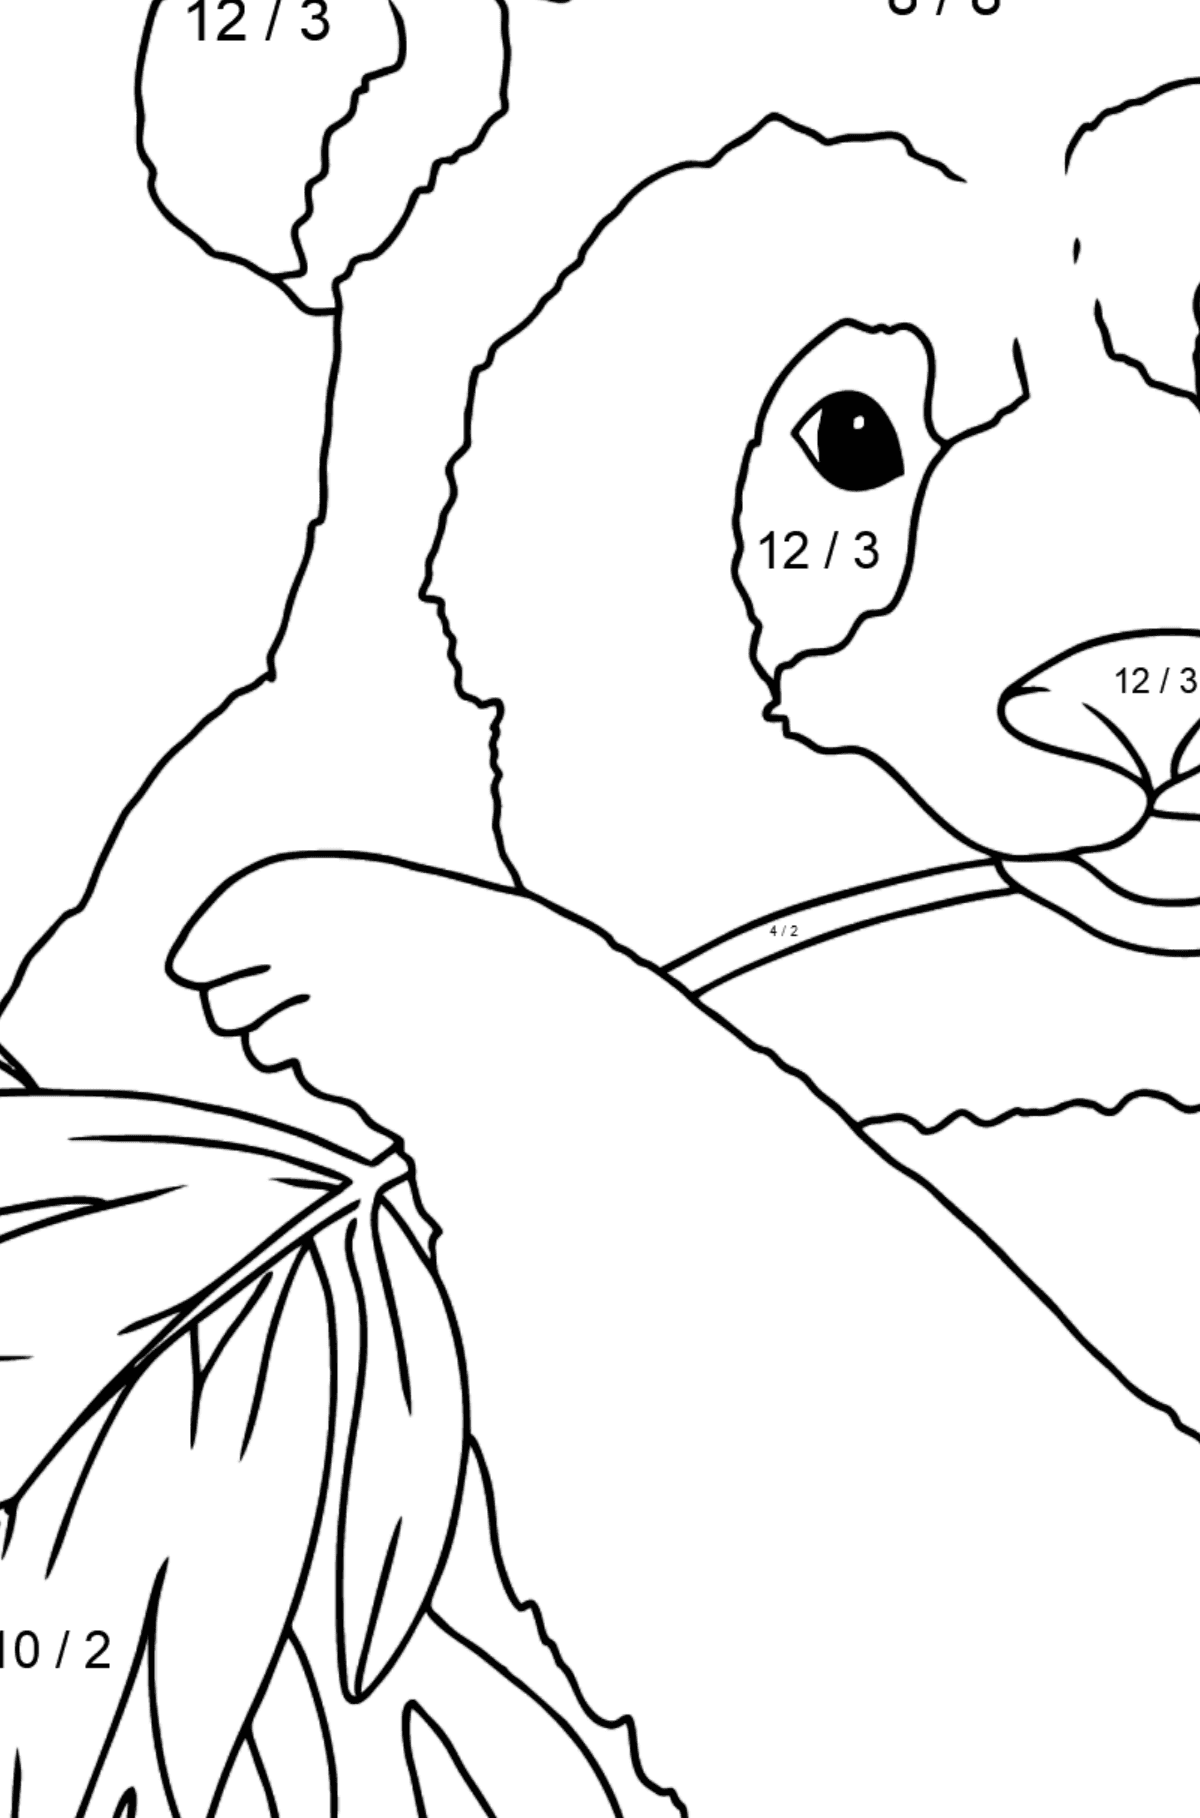 Coloring Page  - A Panda is Eating Leaves - Math Coloring - Division for Kids